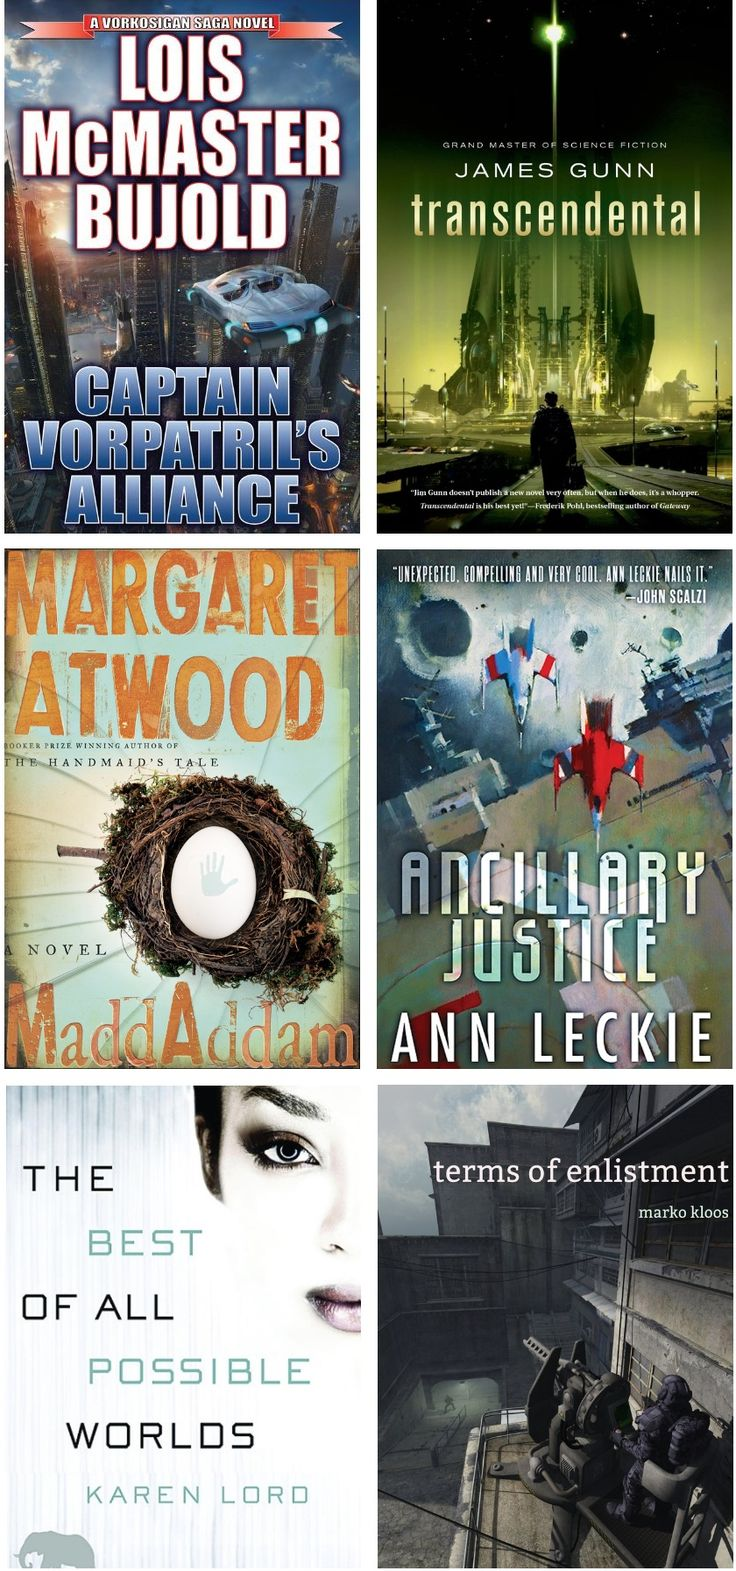 Greatest SciFi Books of 2013 — http://www.buzzfeed.com/mccarricksean/the-greatest-fantasy-books-of-the-year-fjmu?sub=2809670_2105915#.wqznJBLZV1 —  Conservation of Shadows — Abaddon's Gate — Daedulus Incident — Necessary Evil — Great North Road — Data Runner — Parasite — American Elsewhere — Terms of Enlistment — Best of All Possible Worlds — Ancillary Justice — MaddAddam — Trancendental — Captain Vorpatril's Alliance